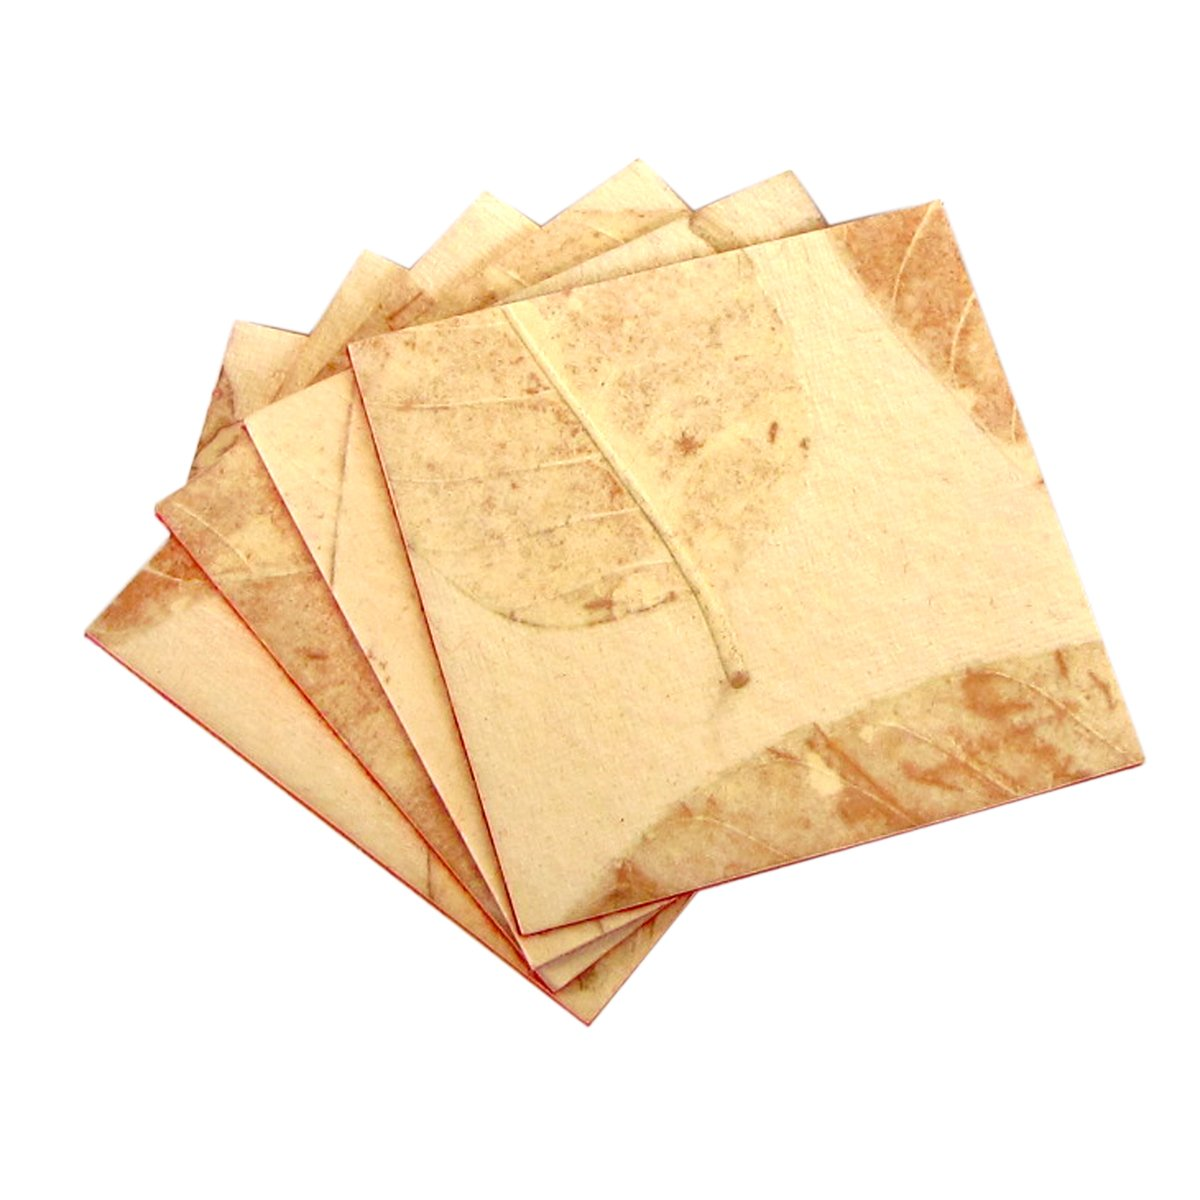 Set 4 coasters natural leaf handmade heavy coated paper craft home decor Xmas gifts felt backs sand